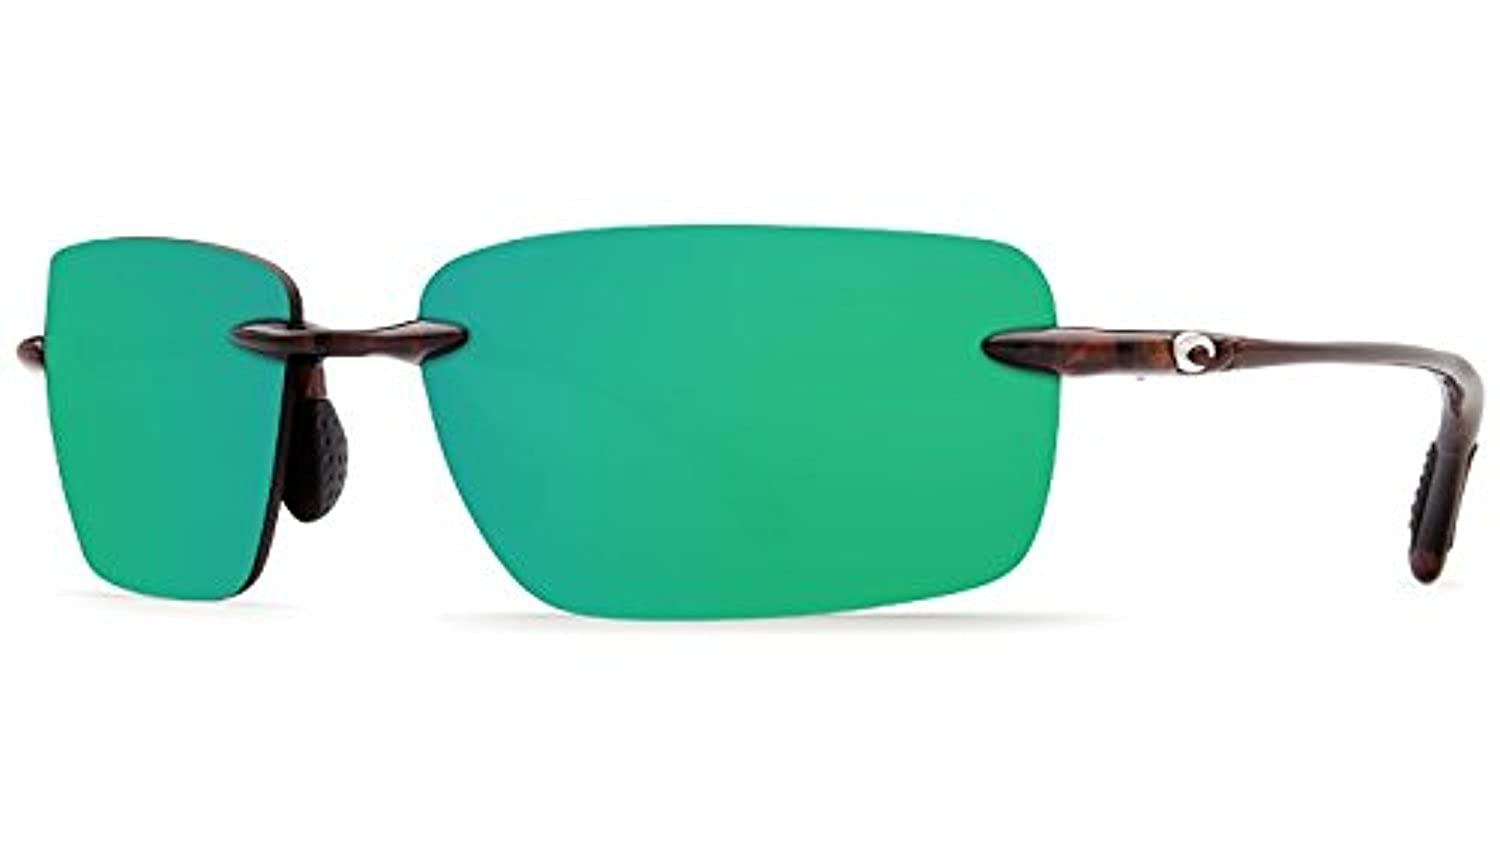 816cf165d68f Amazon.com: Costa Oyster Bay Sunglasses Shiny Tort/Green Mirror 580P &  Cleaning Kit Bundle: Clothing